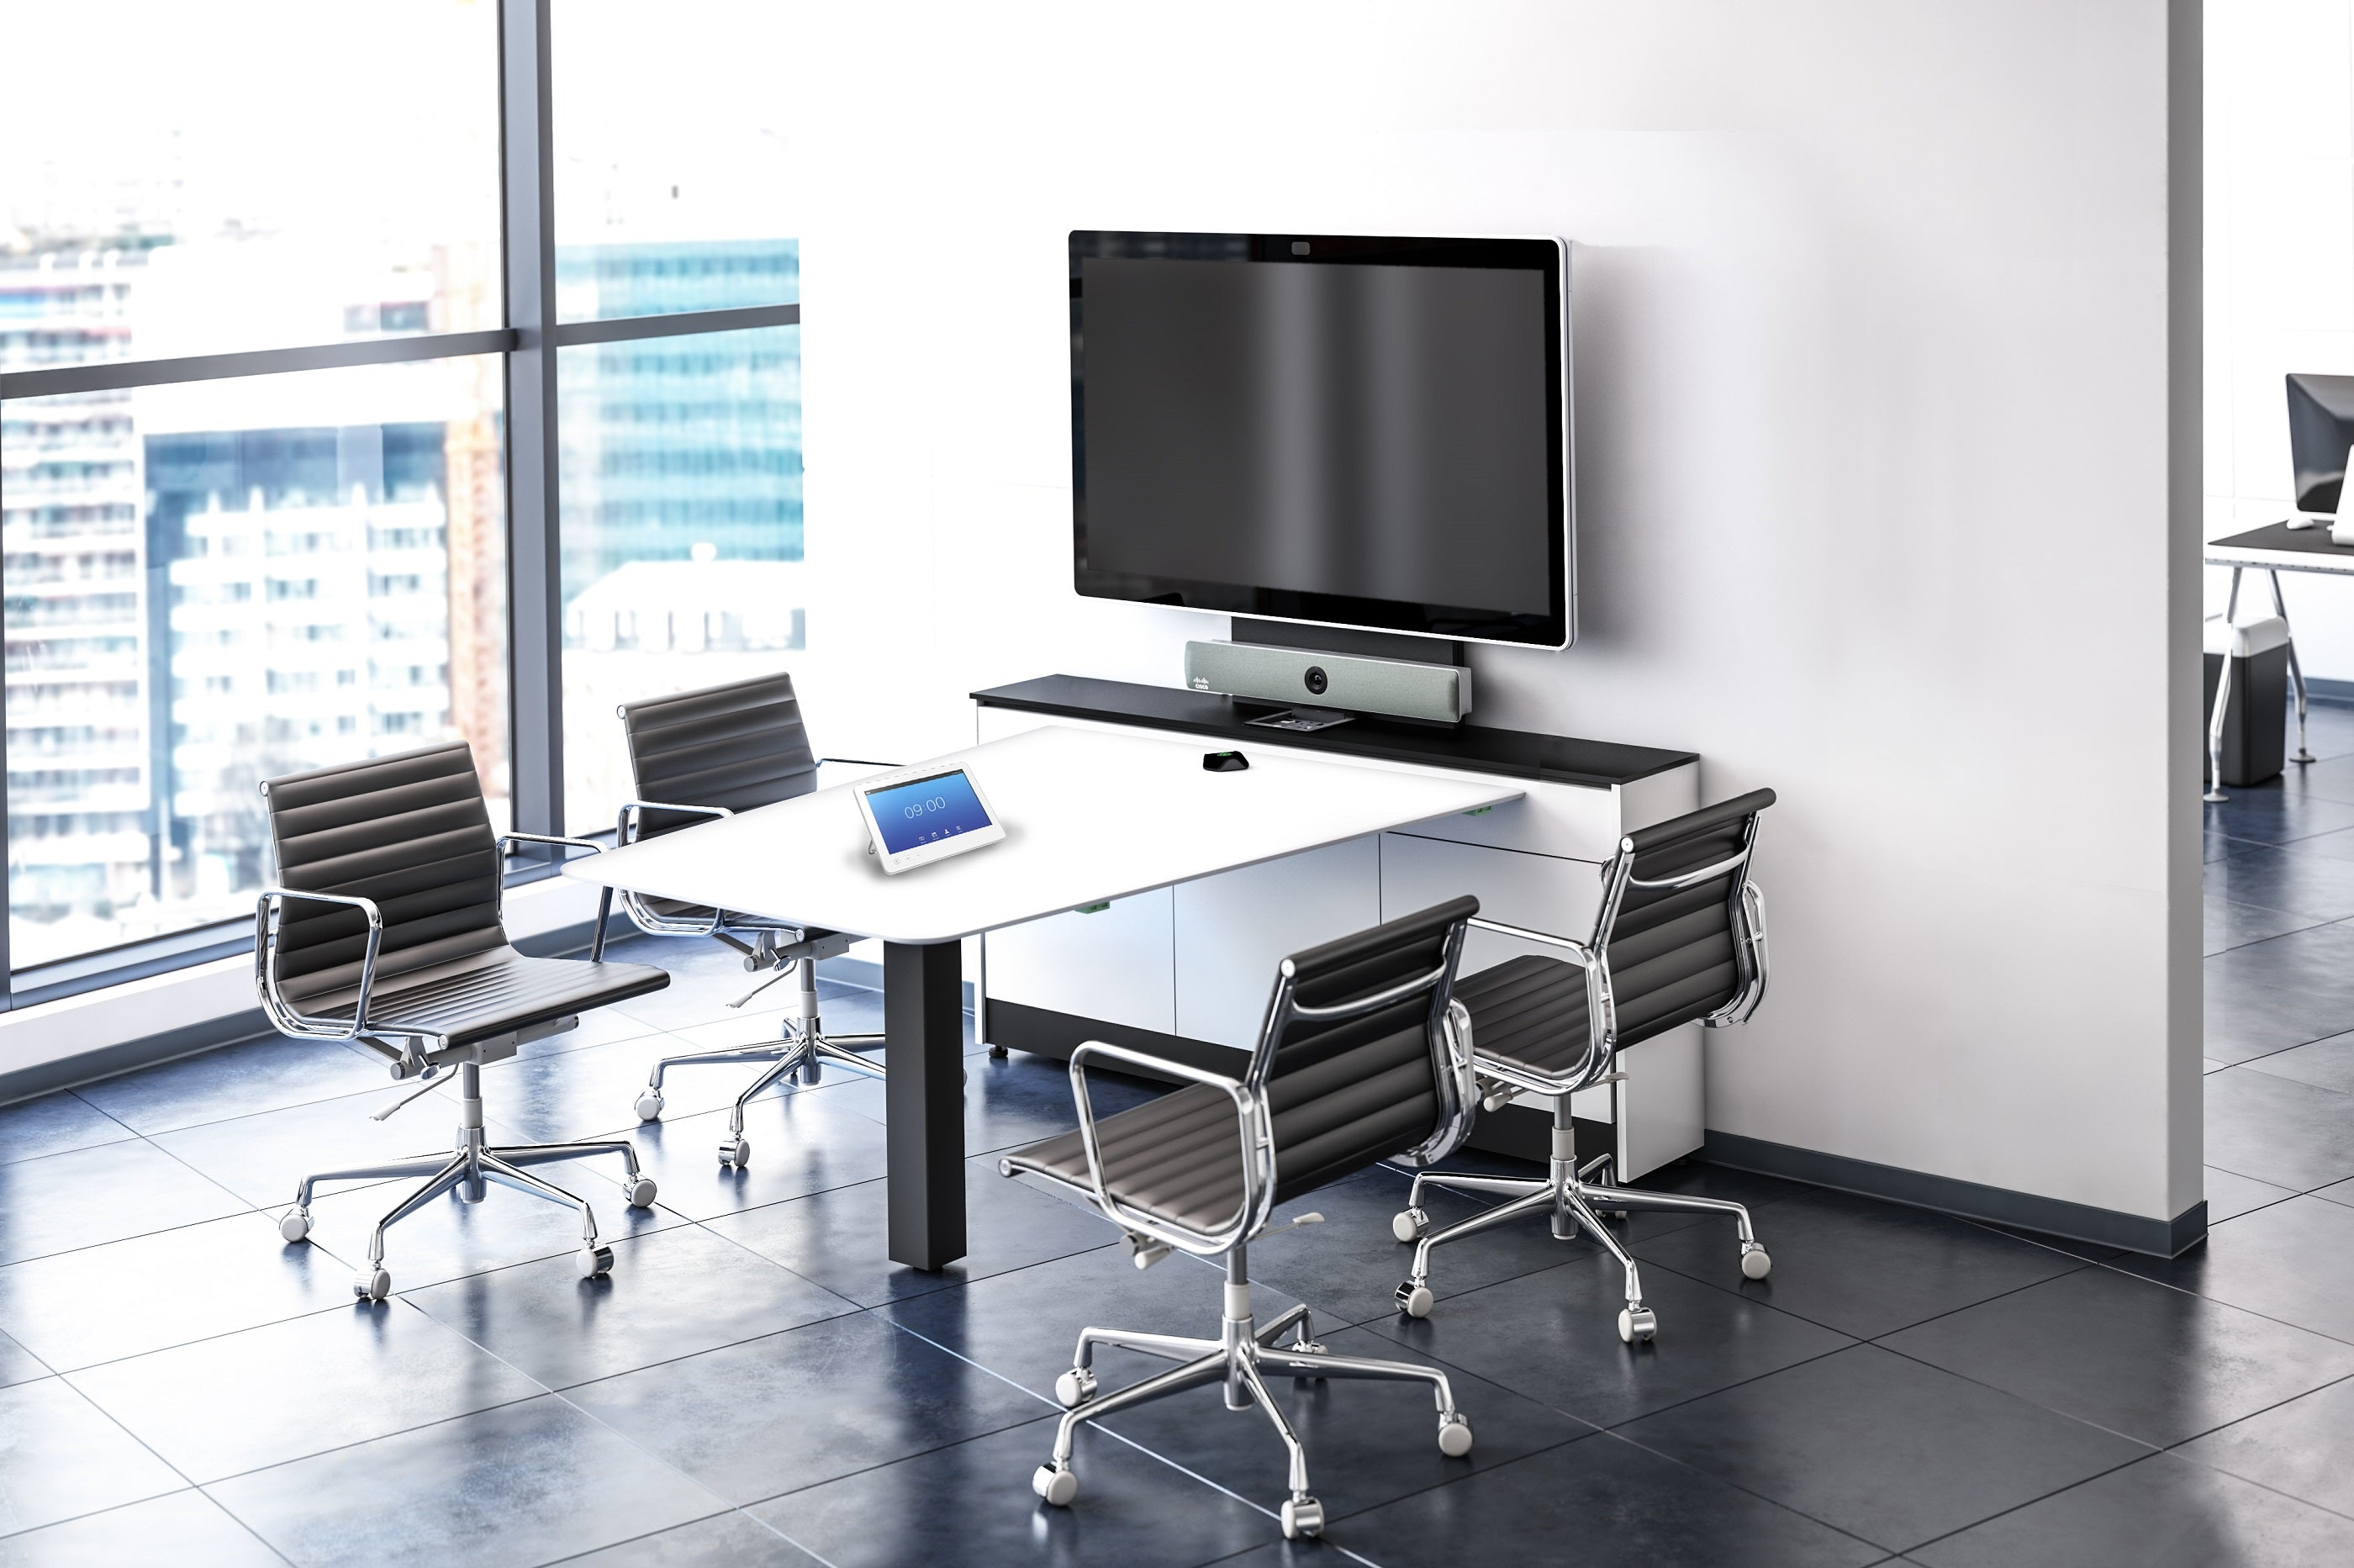 Unifi Huddle with a screen, up tp 4 people can be seated